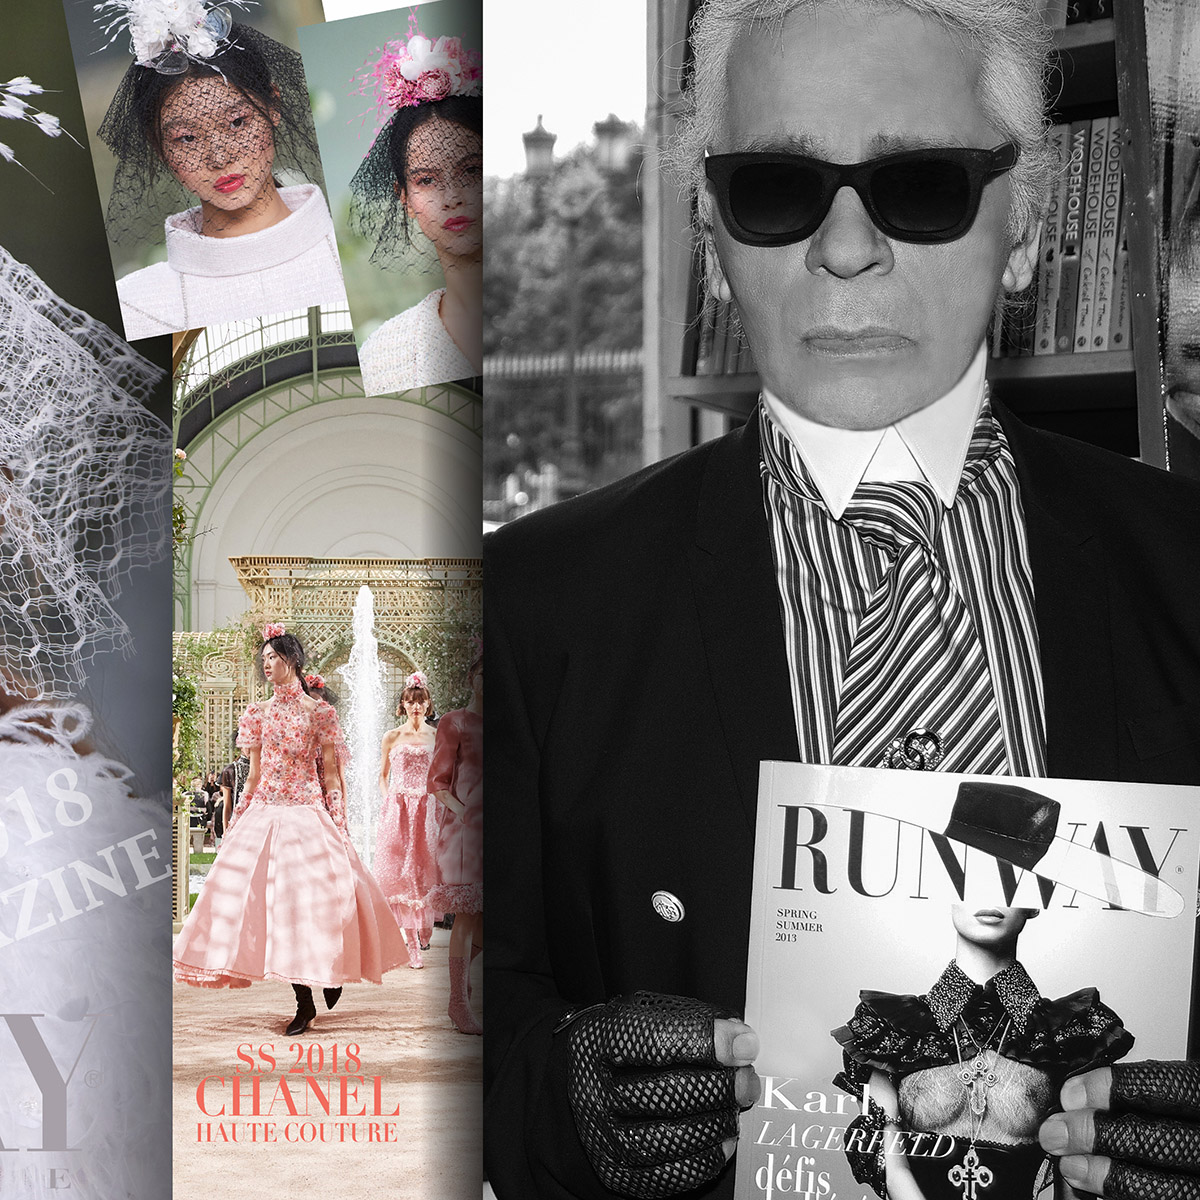 Karl Lagerfeld supports Runway Magazine